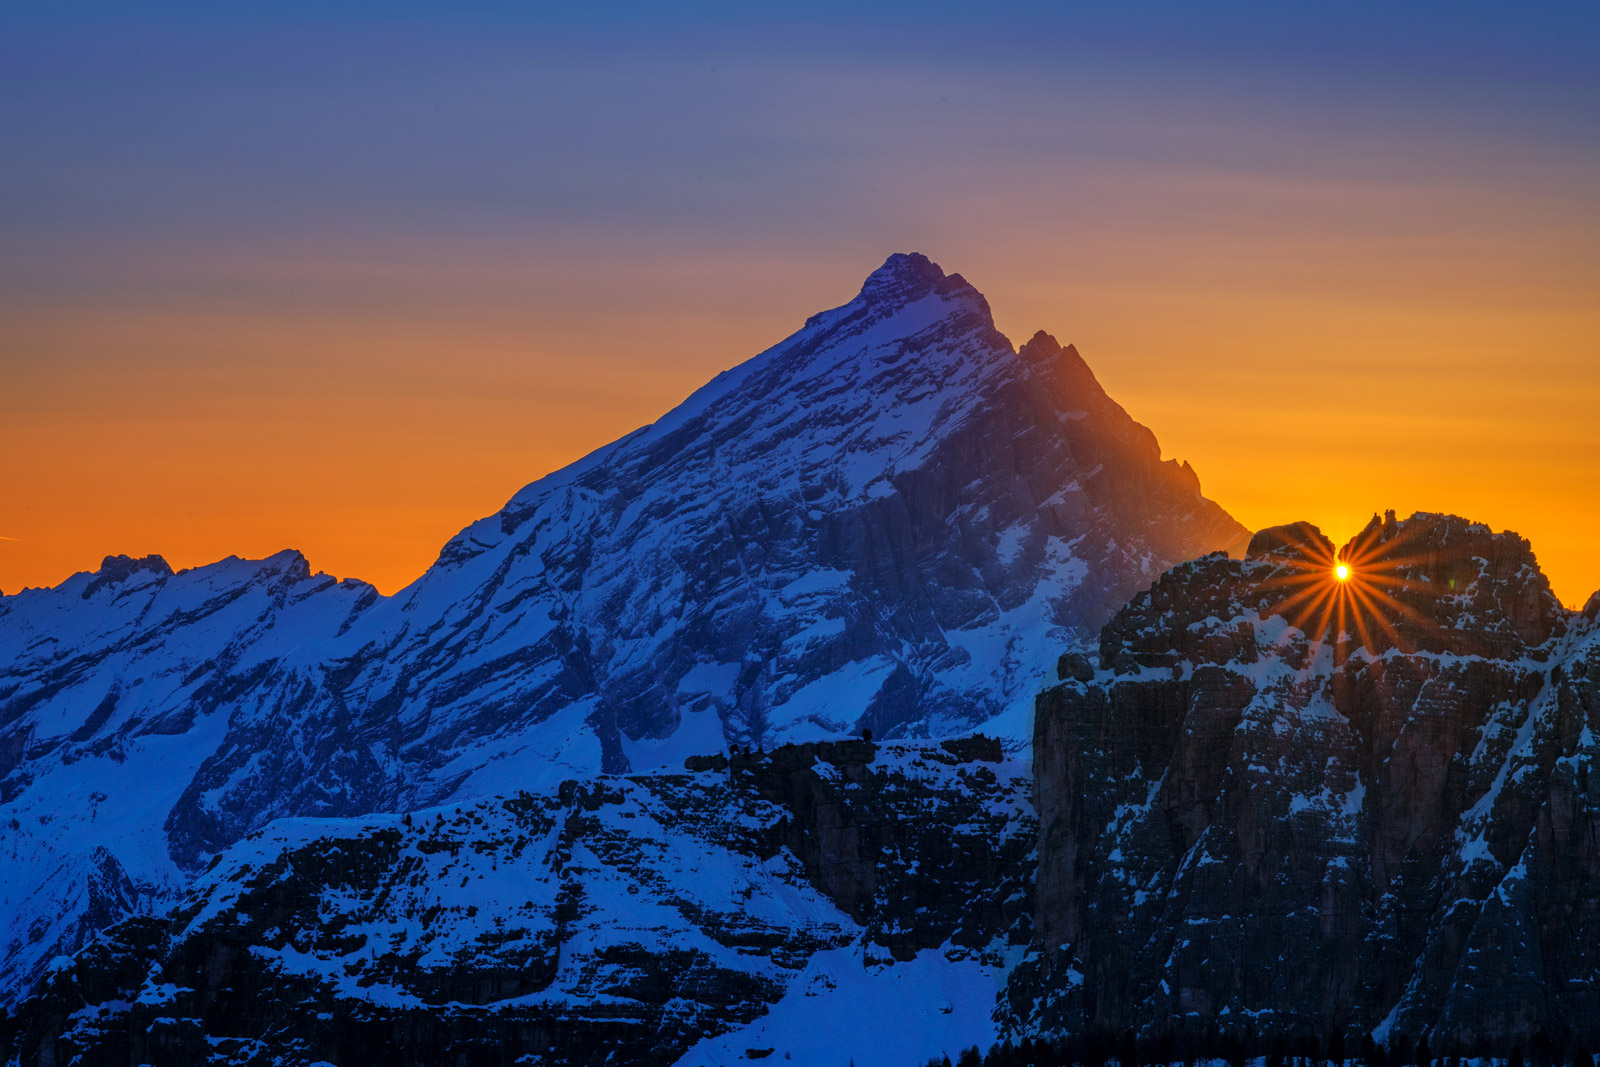 A Limited Edition, Fine Art photograph of the sun bursting over the horizon next to snow covered mountains during winter in the...